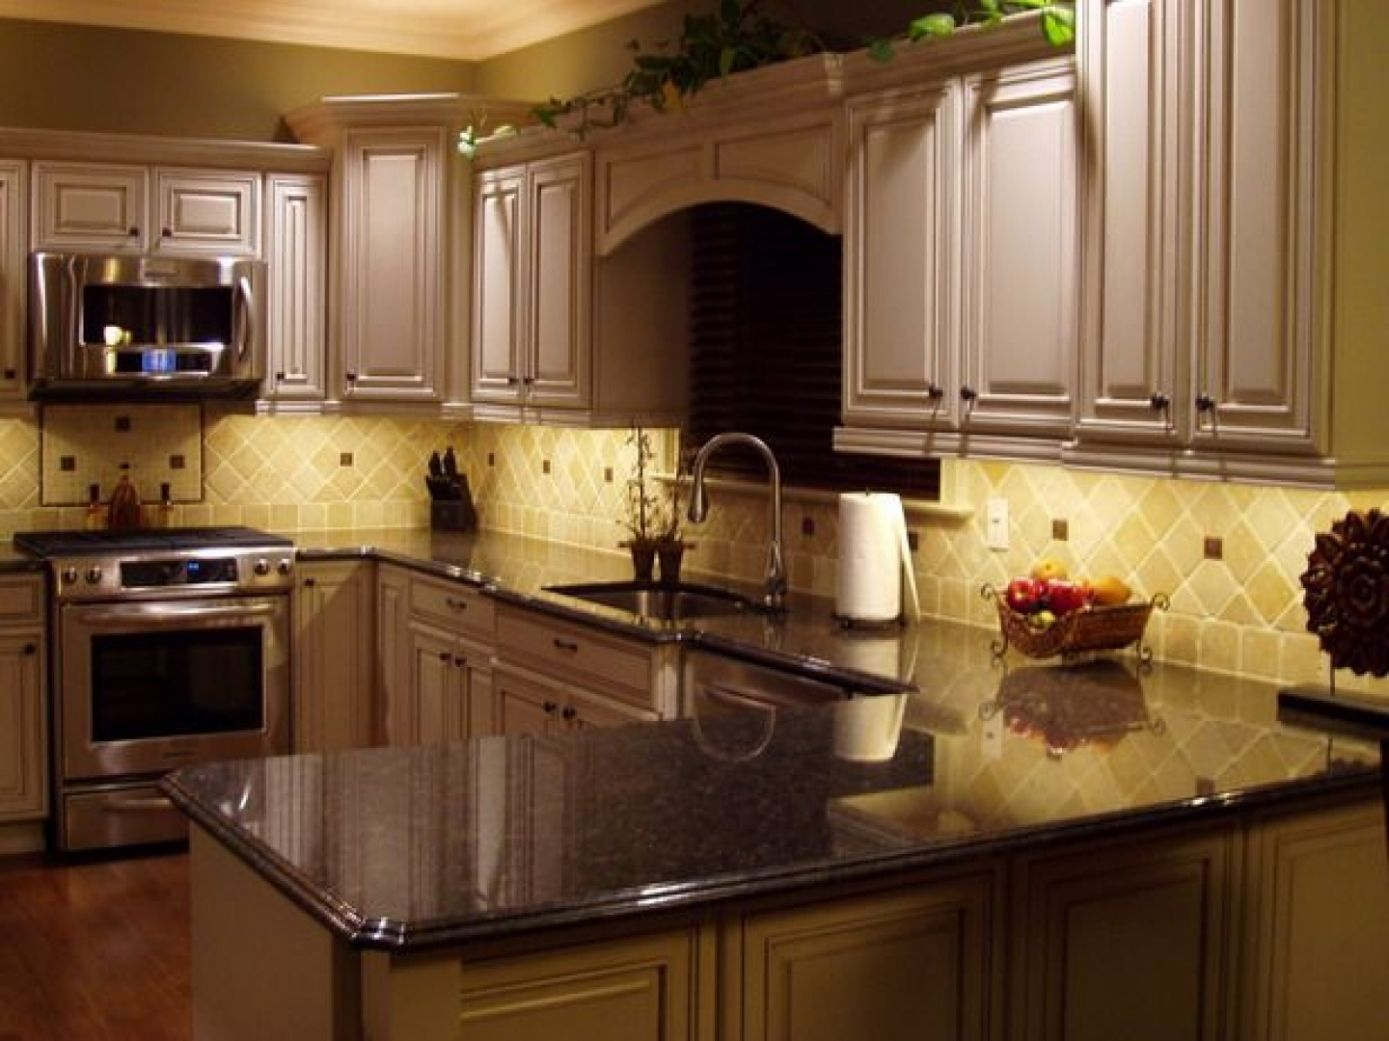 Delicieux 2019 Small L Shaped Kitchen Remodel Ideas   Favorite Interior Paint Colors  Check More At